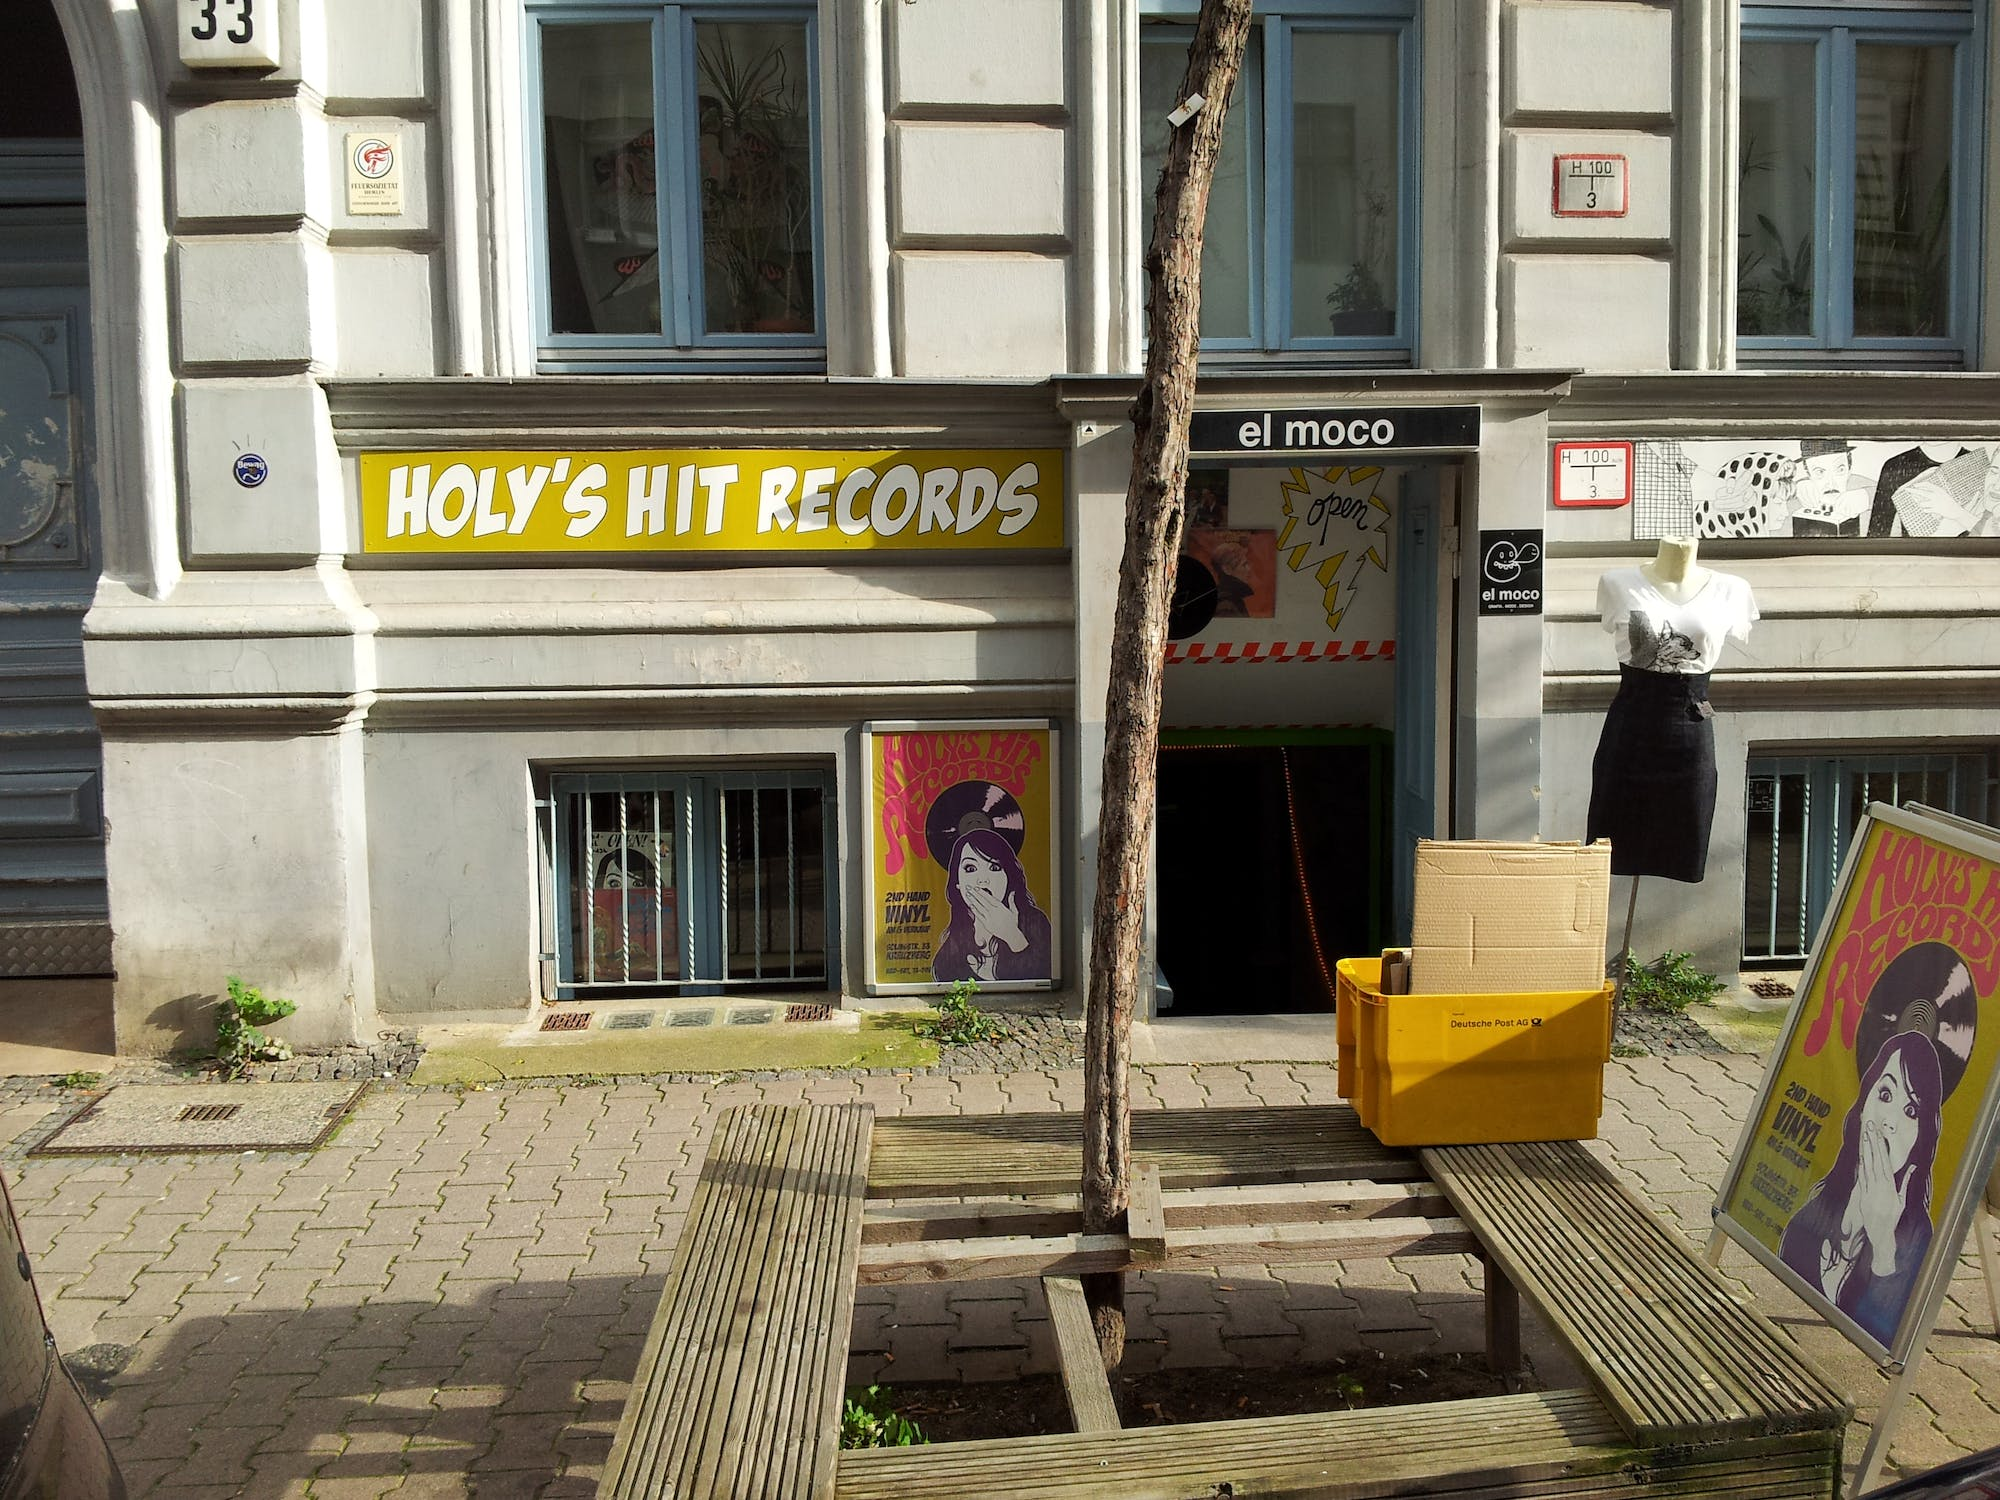 Holy's Hit Records - Record Store Image